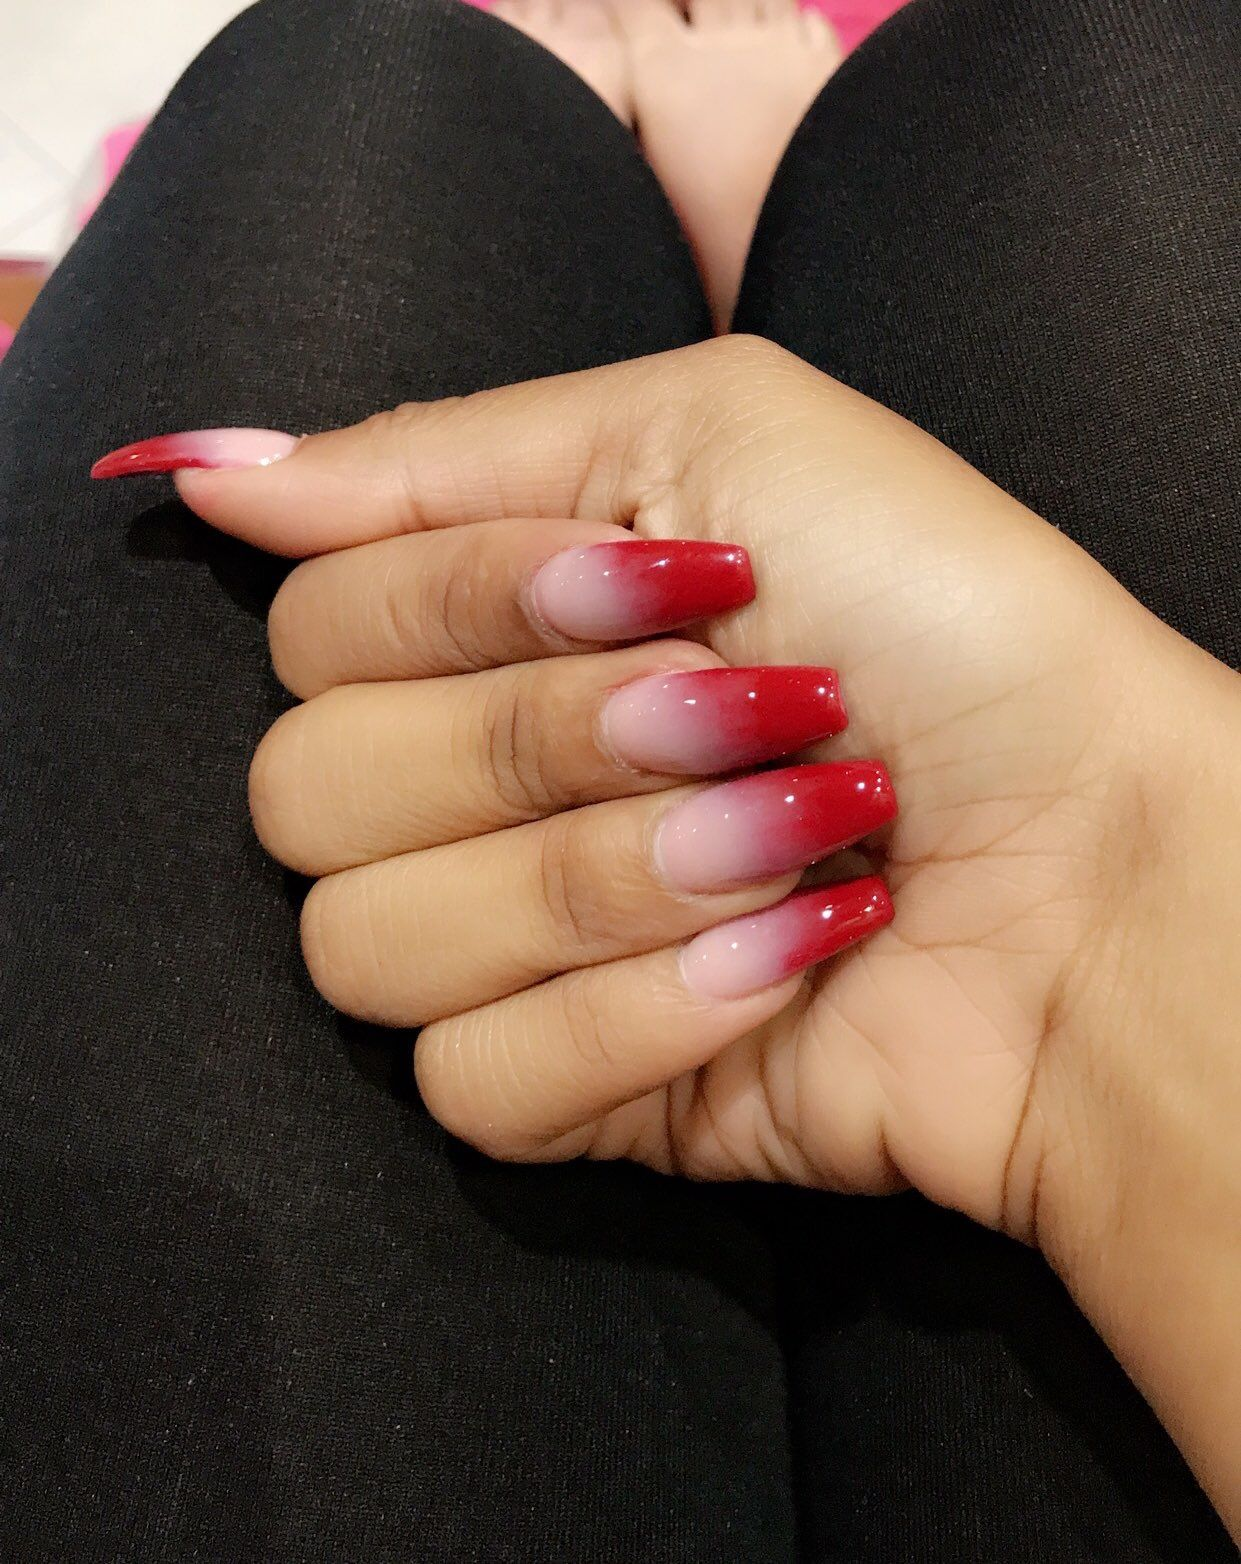 Evon Yen Vuong On Instagram Your Nails Are Your Statement Make It A Great One Red Acrylic Nails Pretty Acrylic Nails Acrylic Nails